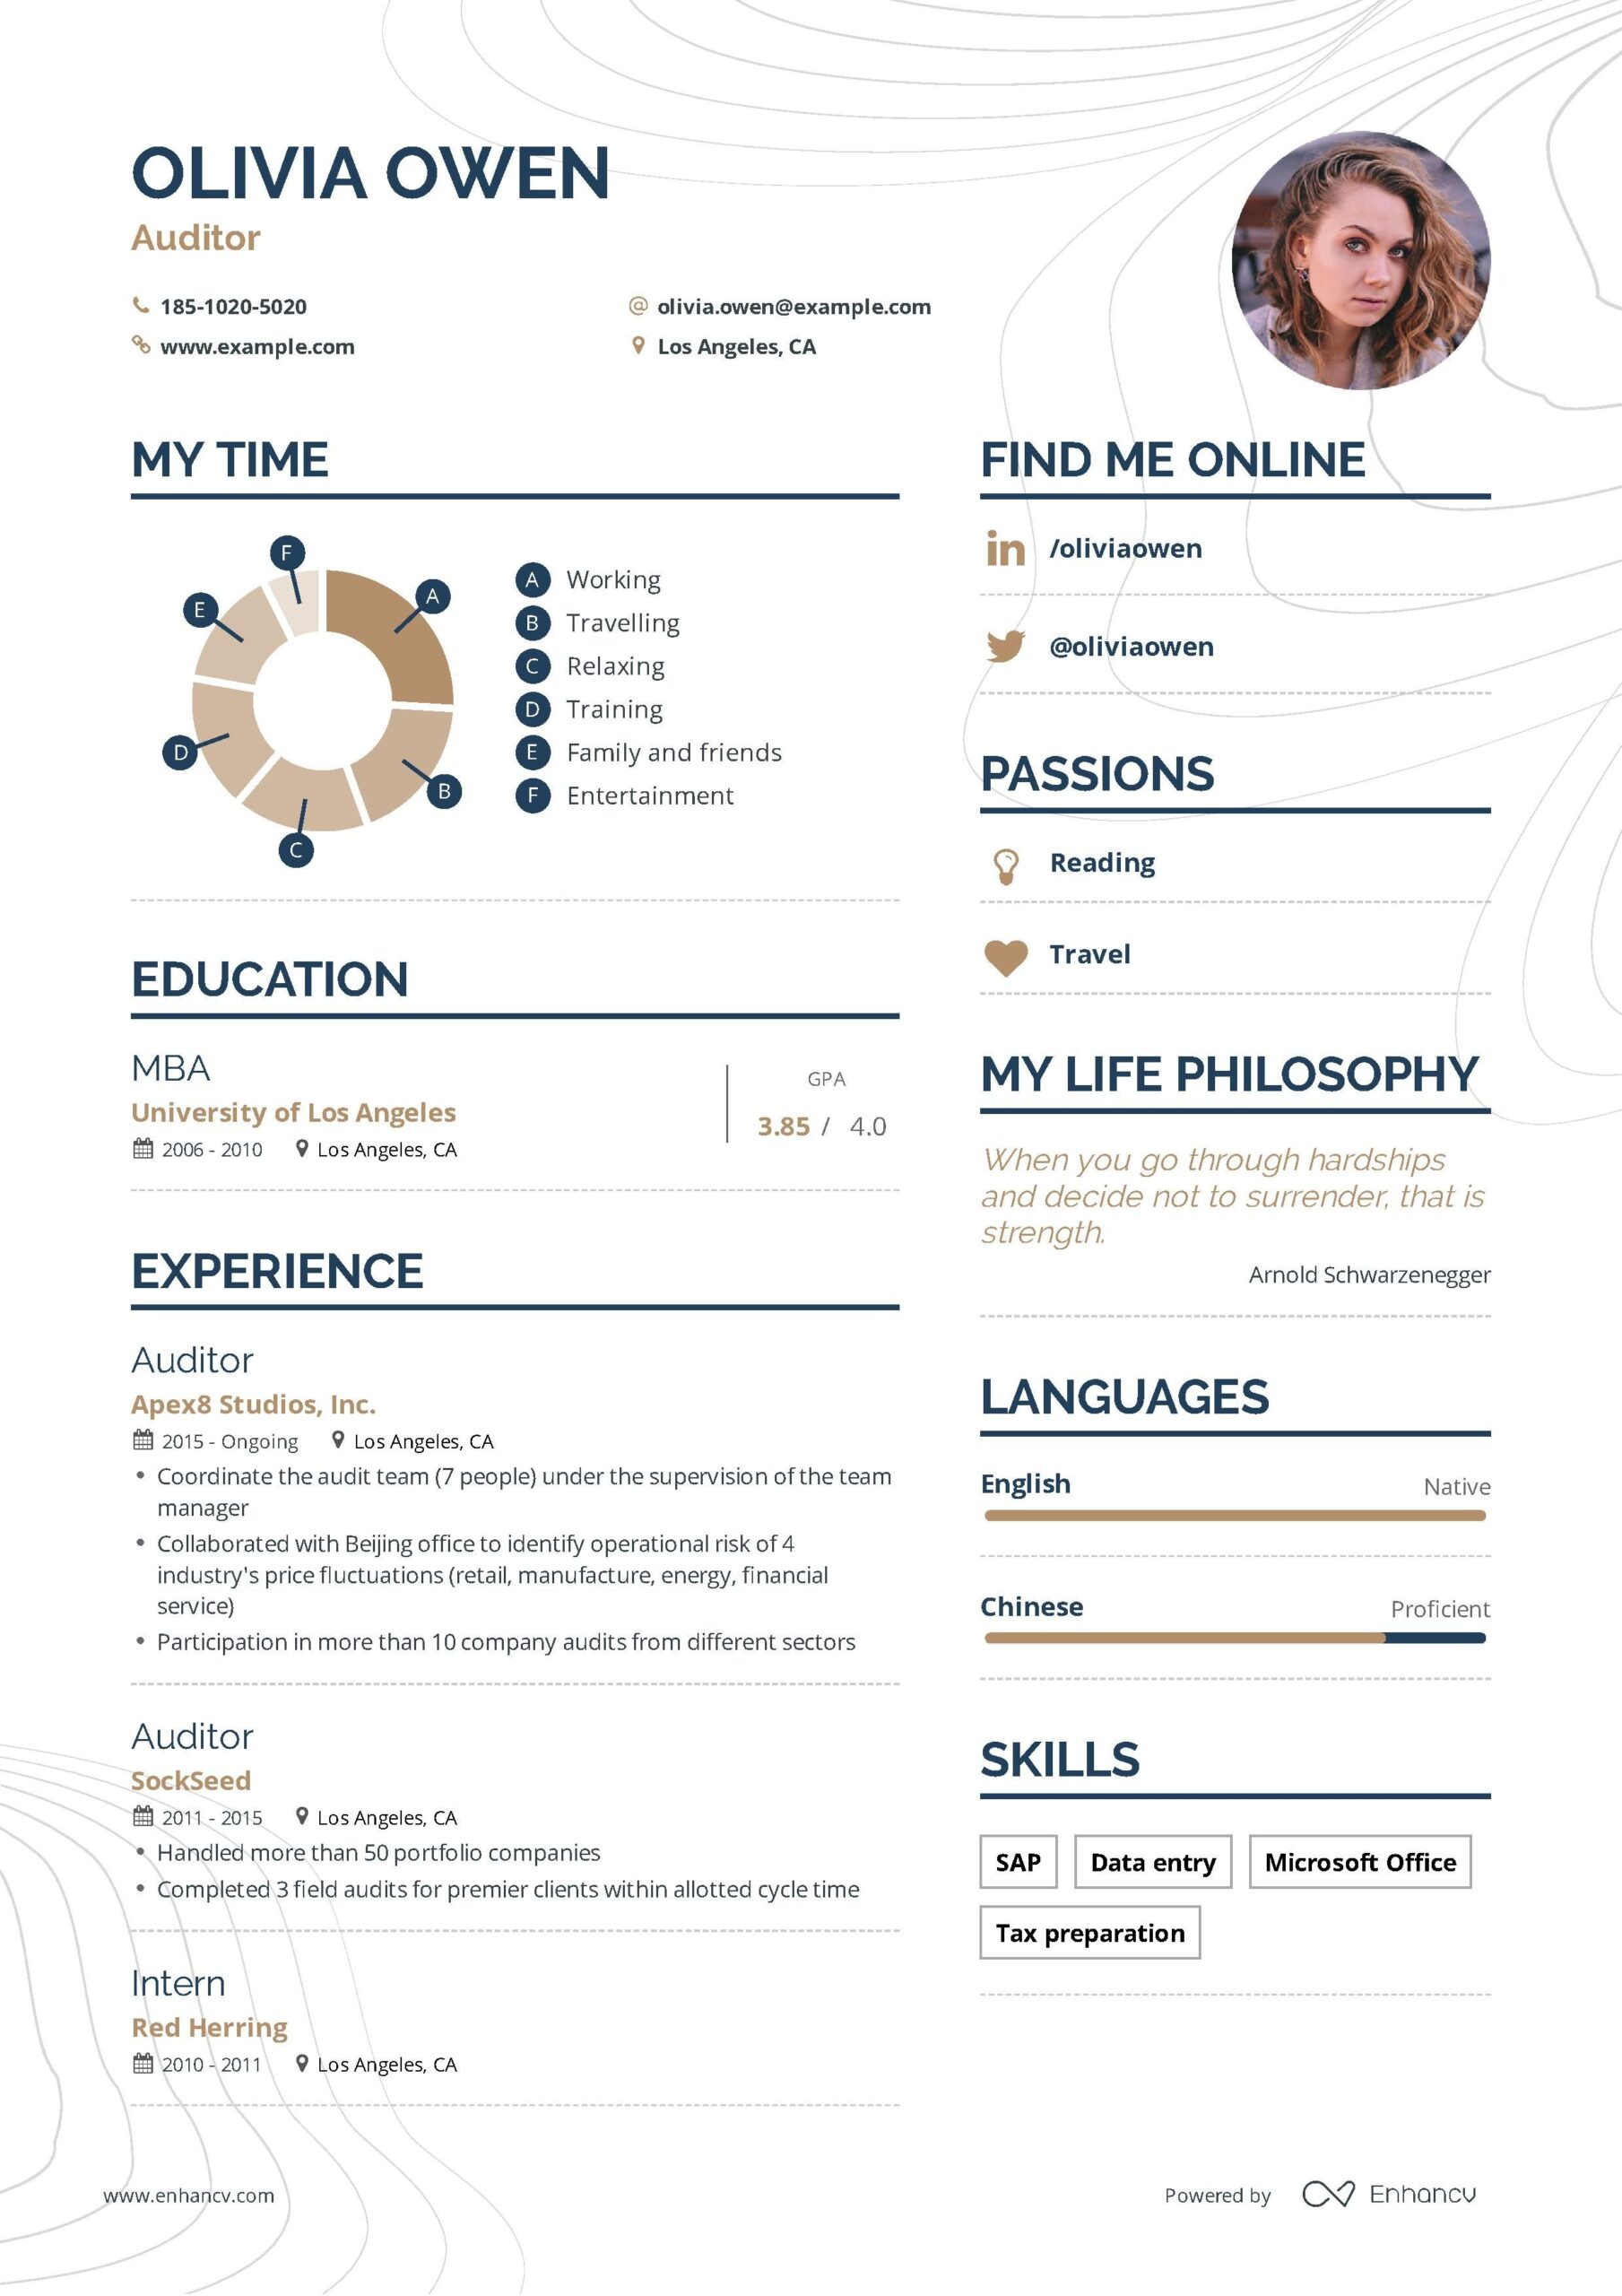 auditor resume example and guide for examples good job business free infographic template Resume Business Resume Examples 2019